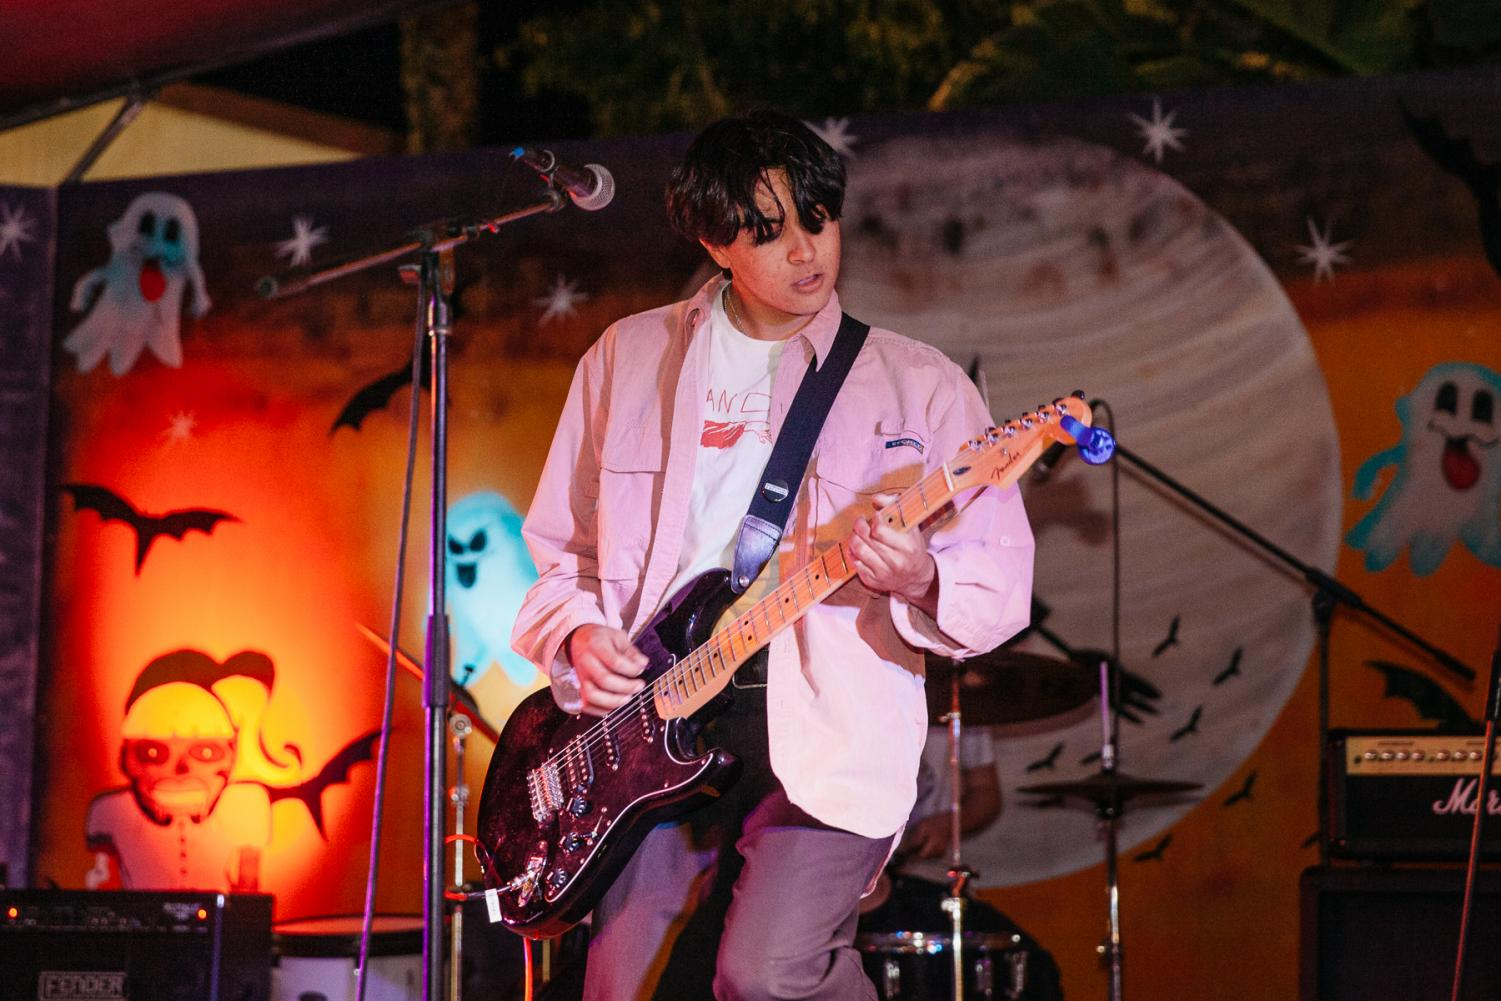 """ExPorter lead guitarist and City College student Alec Cavazos Plays guitar at the ExPorter performance at """"The Haunt & Harvest Festival"""" on Friday Oct. 18, 2019 at the Earl Warren Showgrounds in Santa Barbara, Calif."""